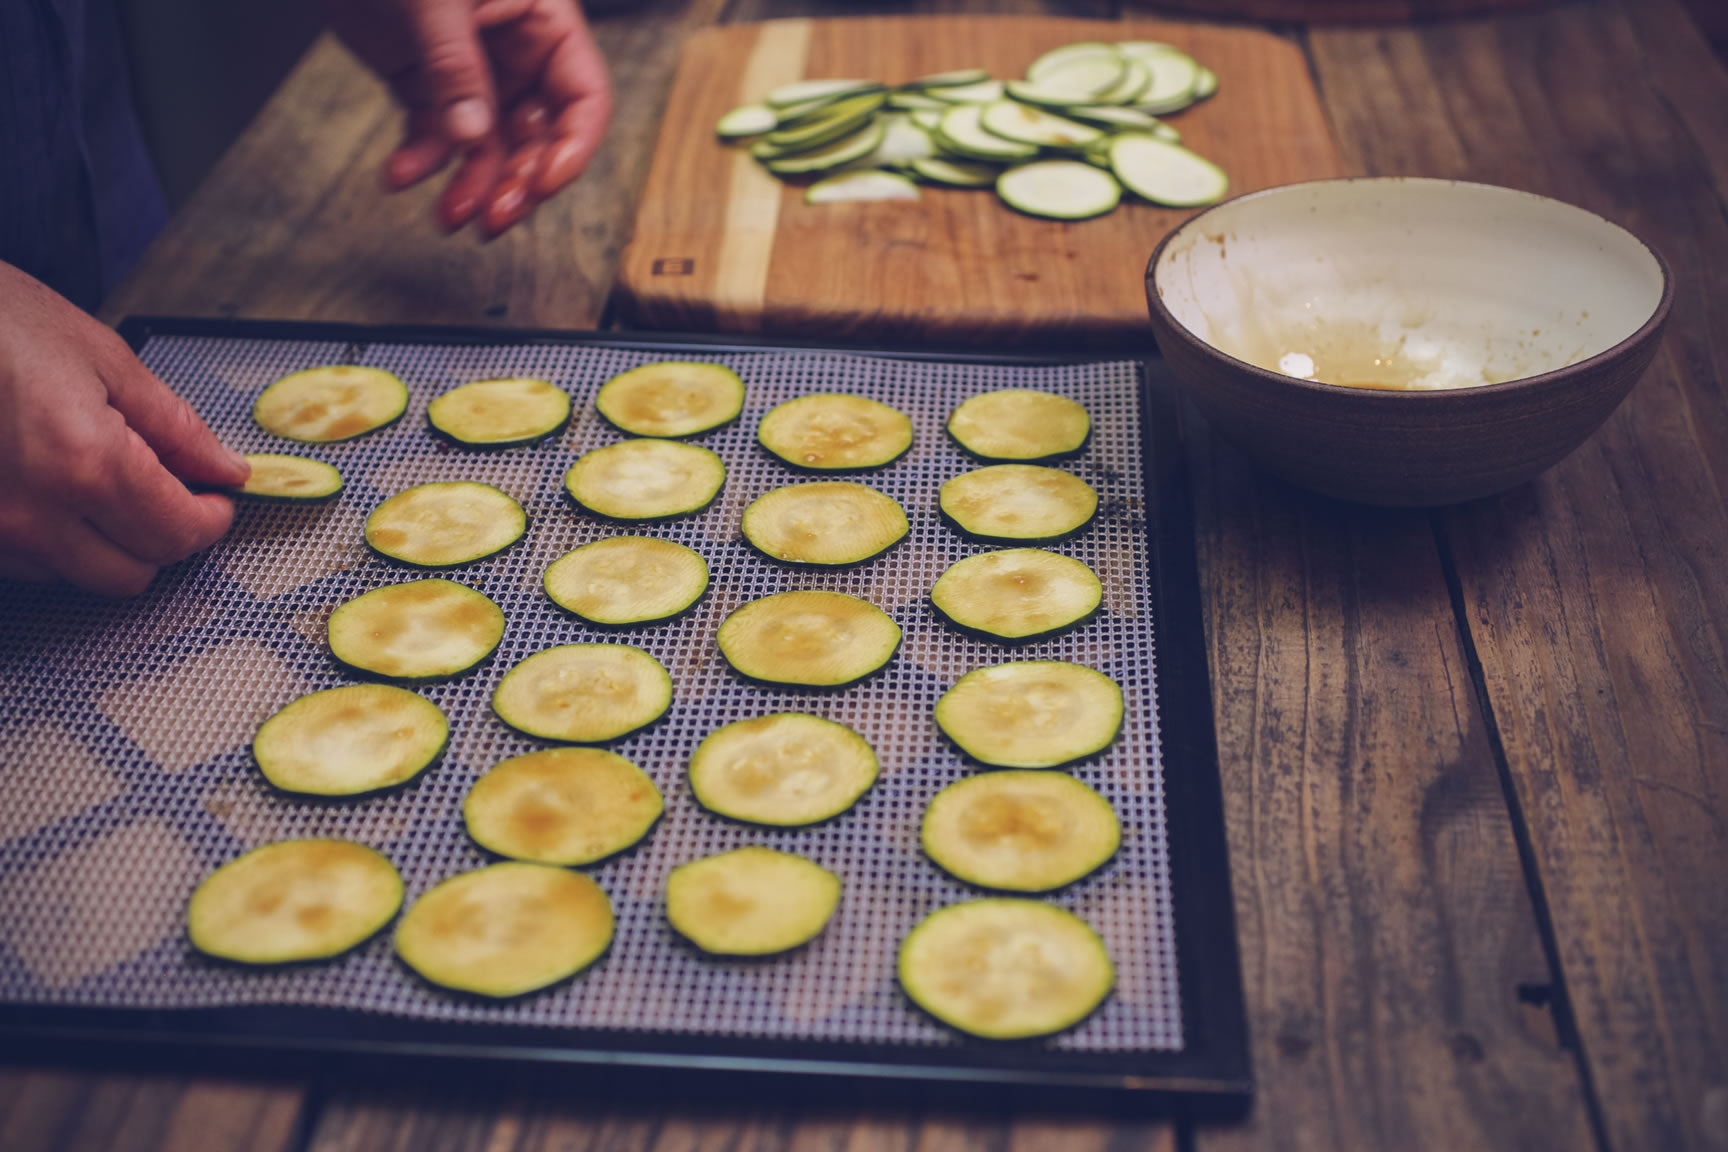 Zucchini chips recipe for food dehydrator mountain feed farm supply in a dehydrator spread the raw slices over trays dehydrate at 120f until the zucchini are as crispy as potato chips about 12 18 hours forumfinder Images